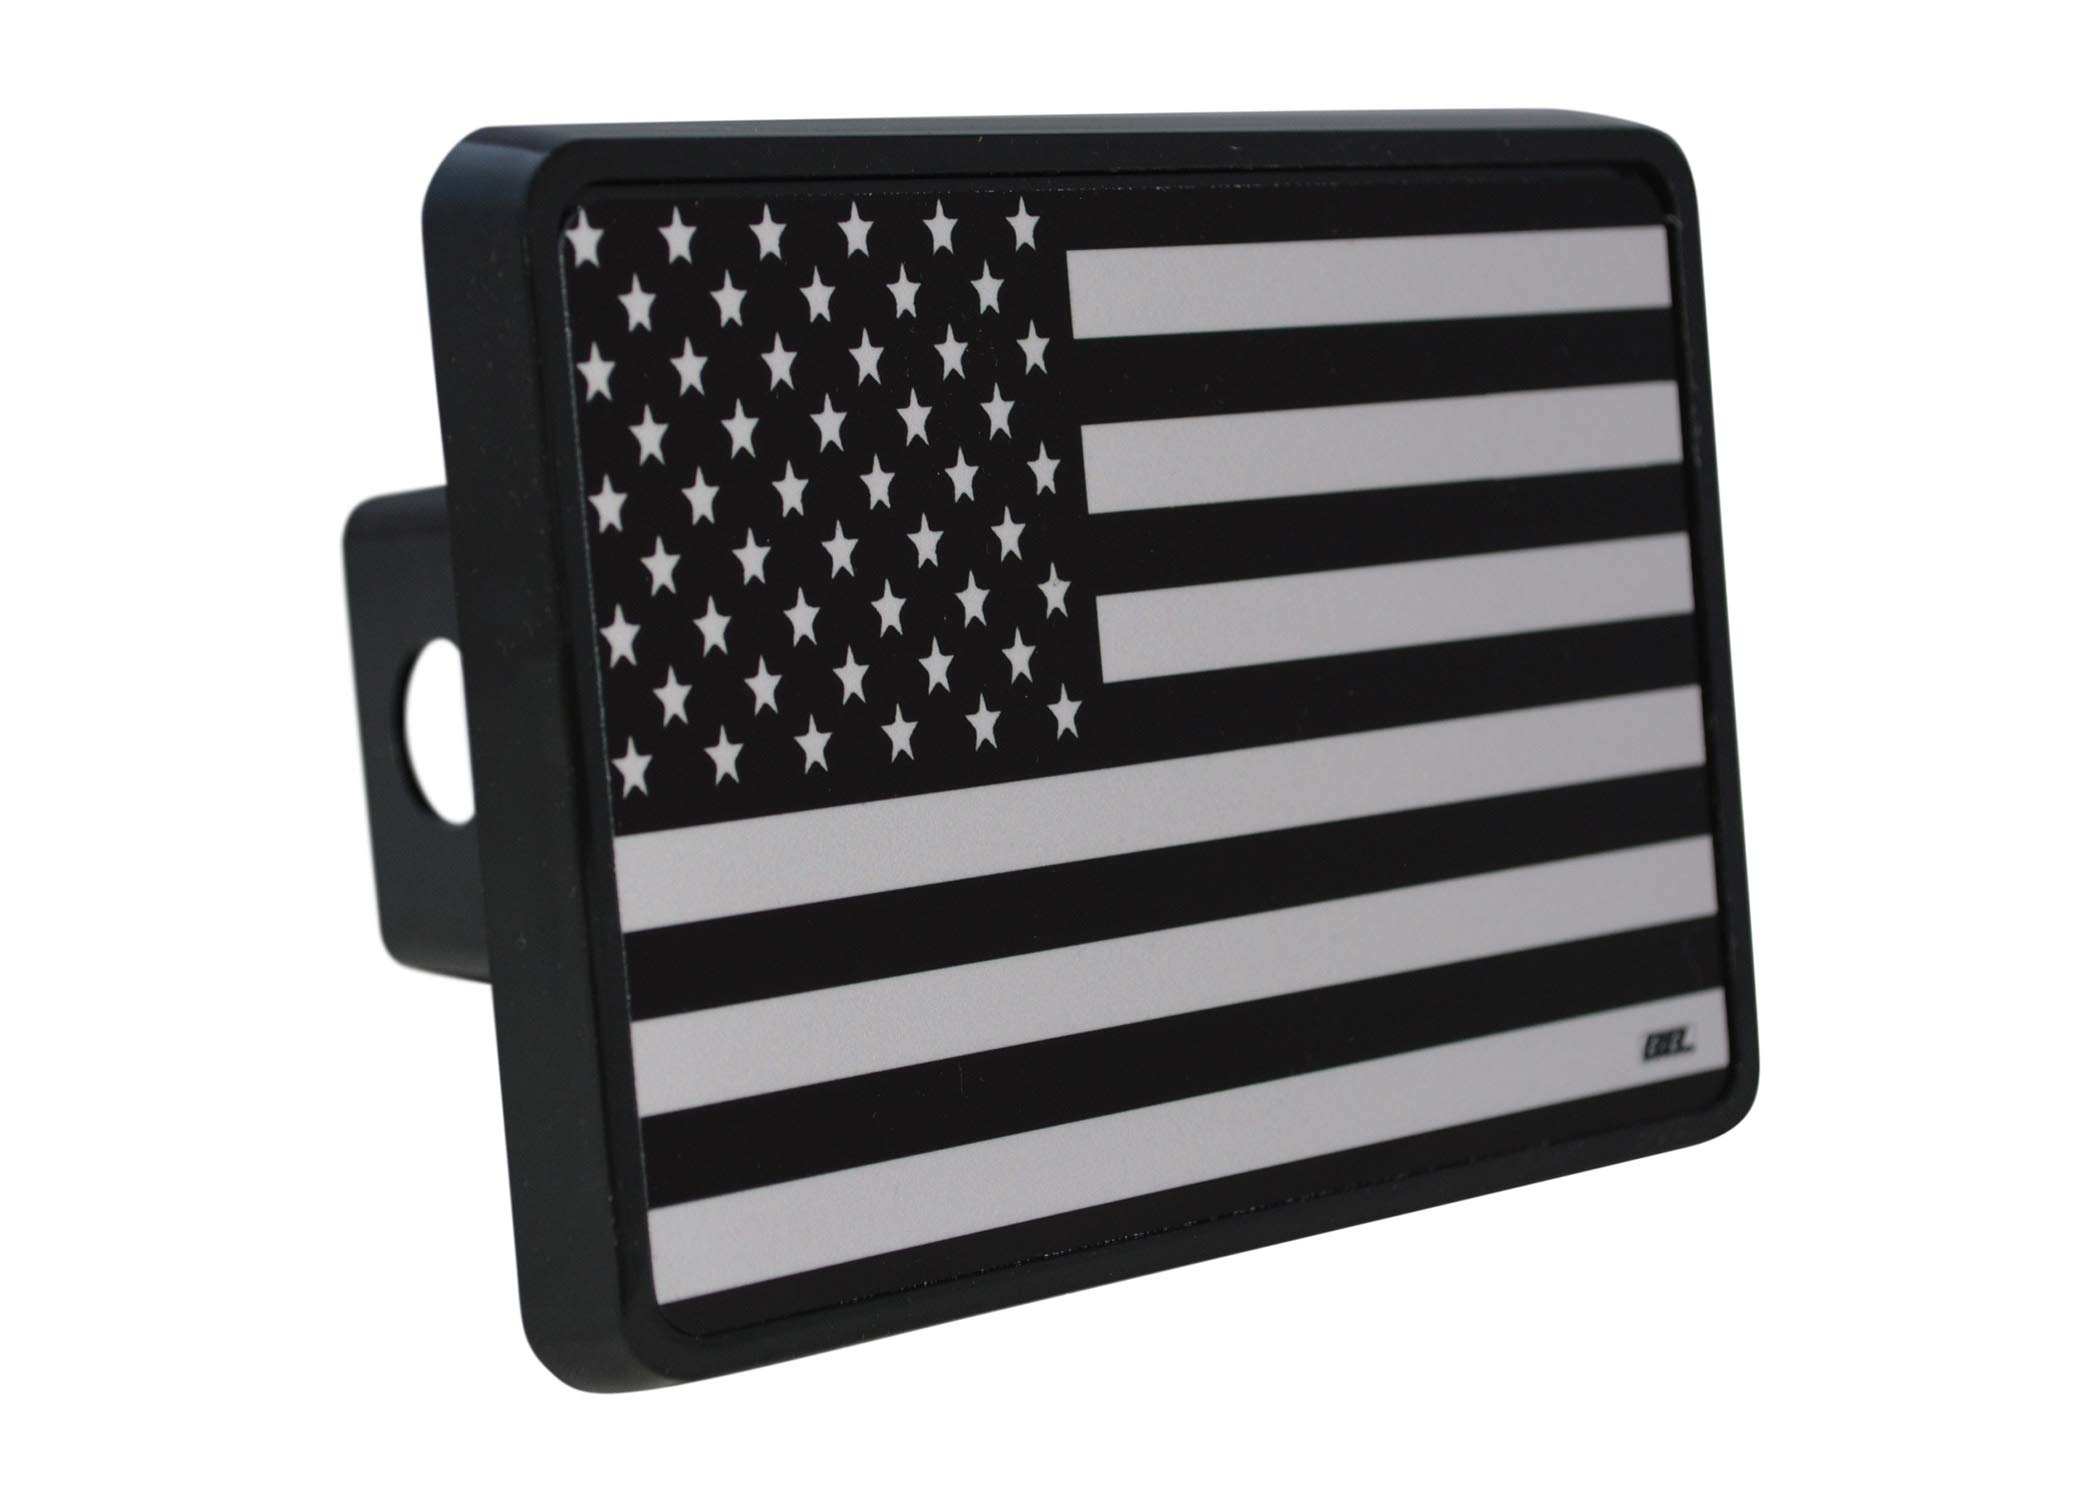 Rogue River Tactical USA American Flag Trailer Hitch Cover Plug US Patriotic Subdued Military Veteran Flag by Rogue River Tactical